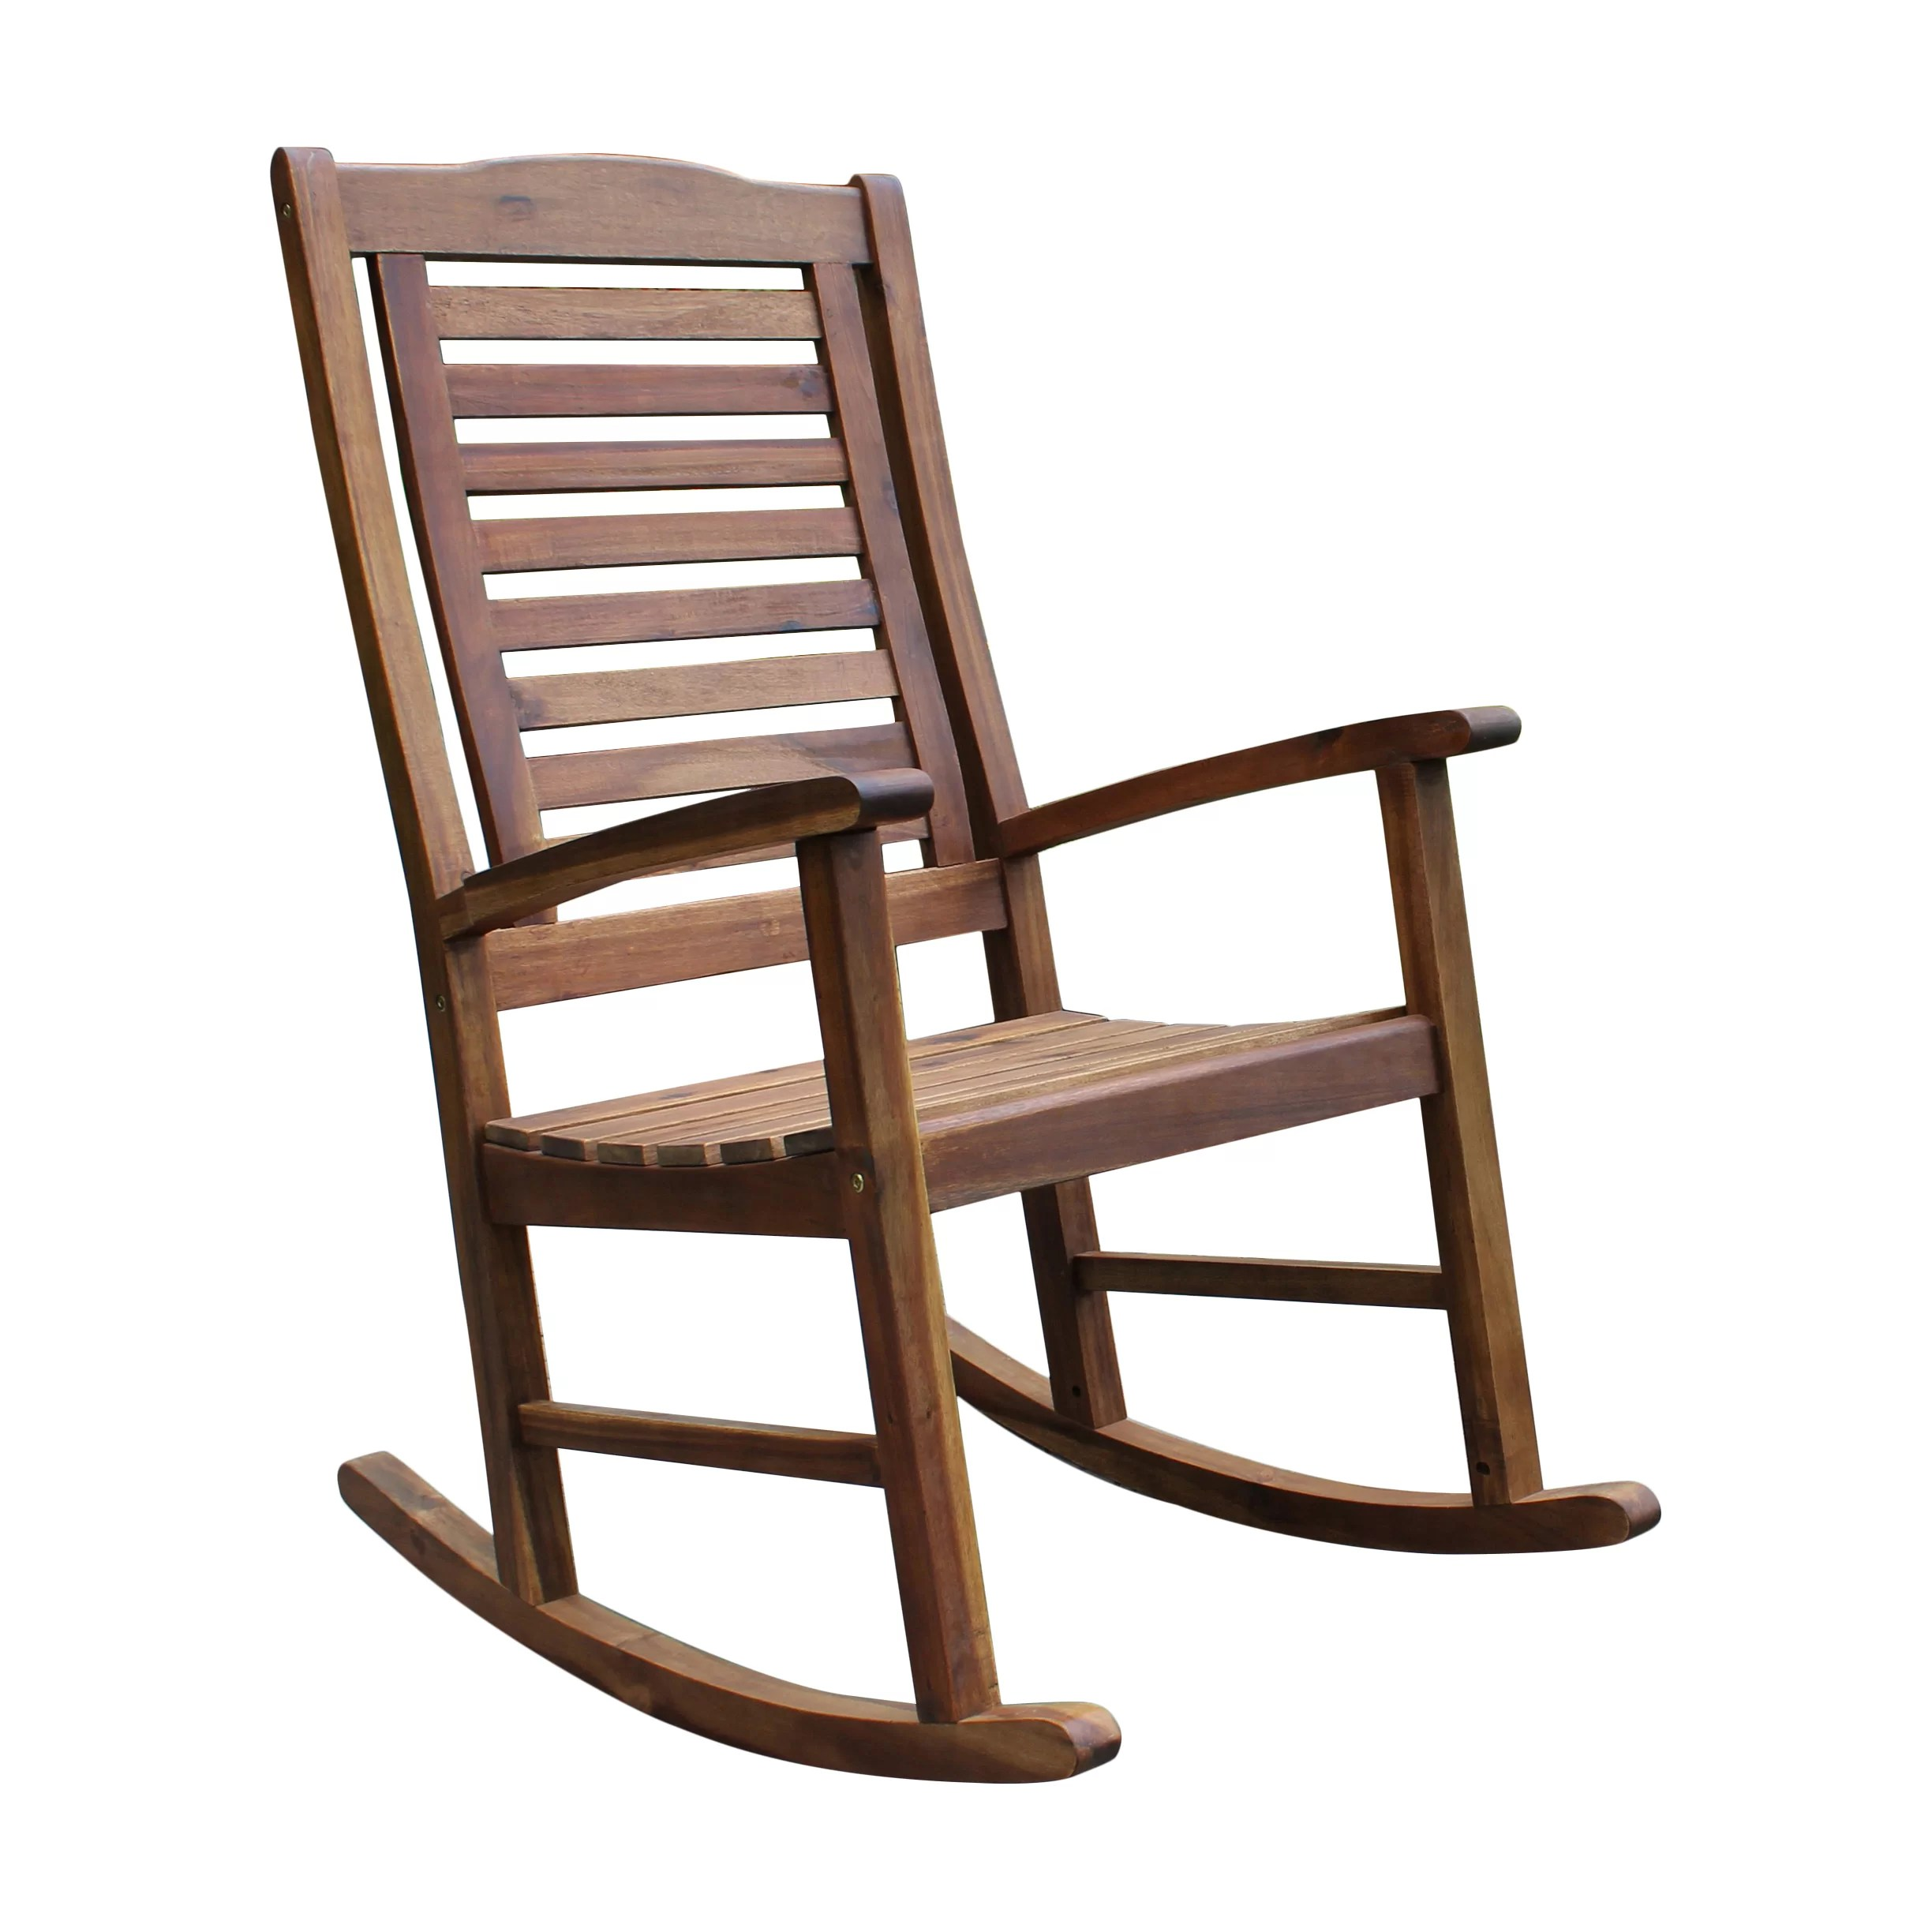 exterior rocking chairs lumbar pillow for chair breakwater bay sandy point contemporary outdoor